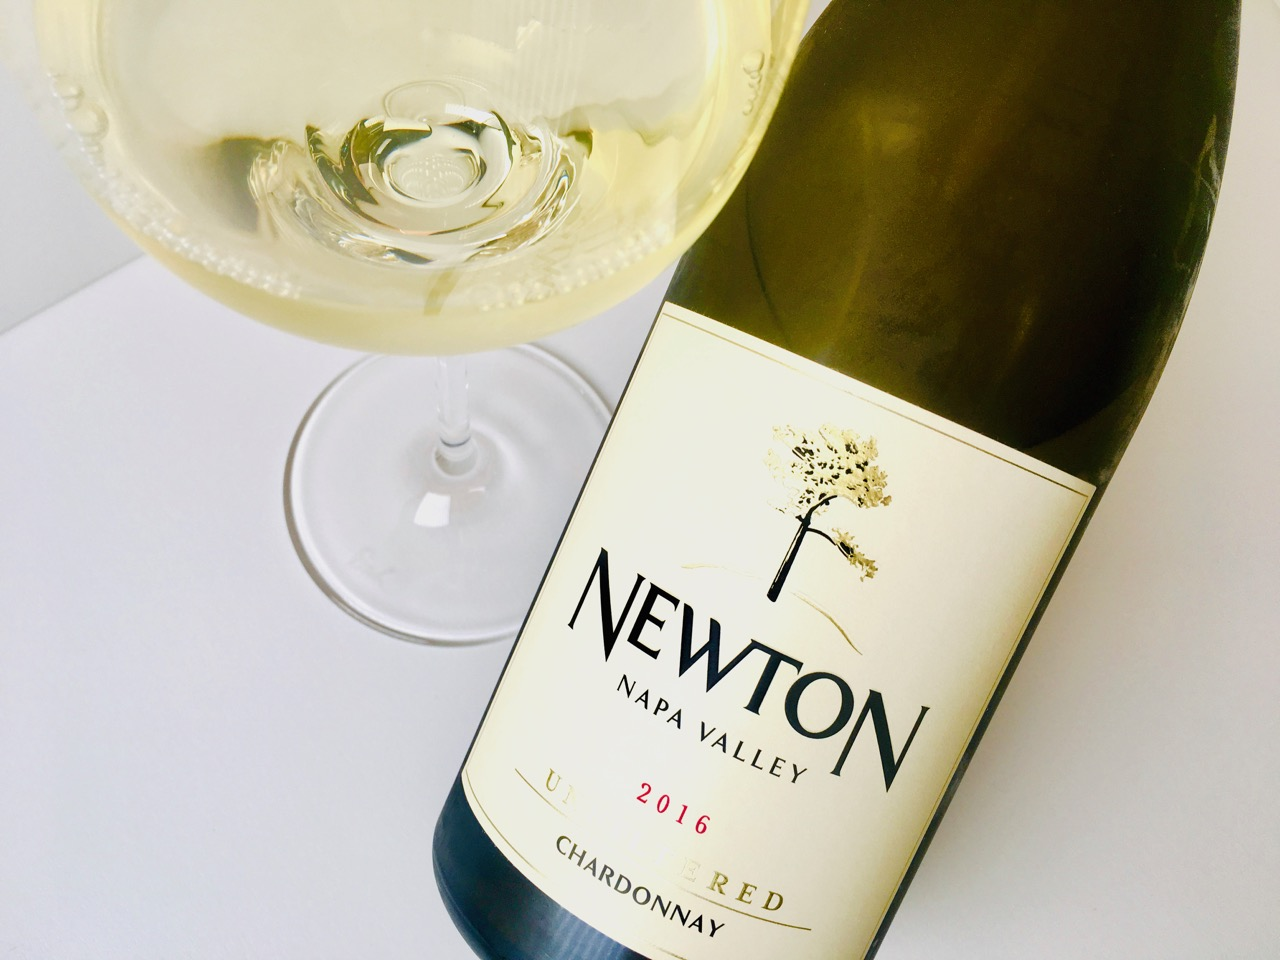 2016 Newton Chardonnay Unfiltered Napa Valley